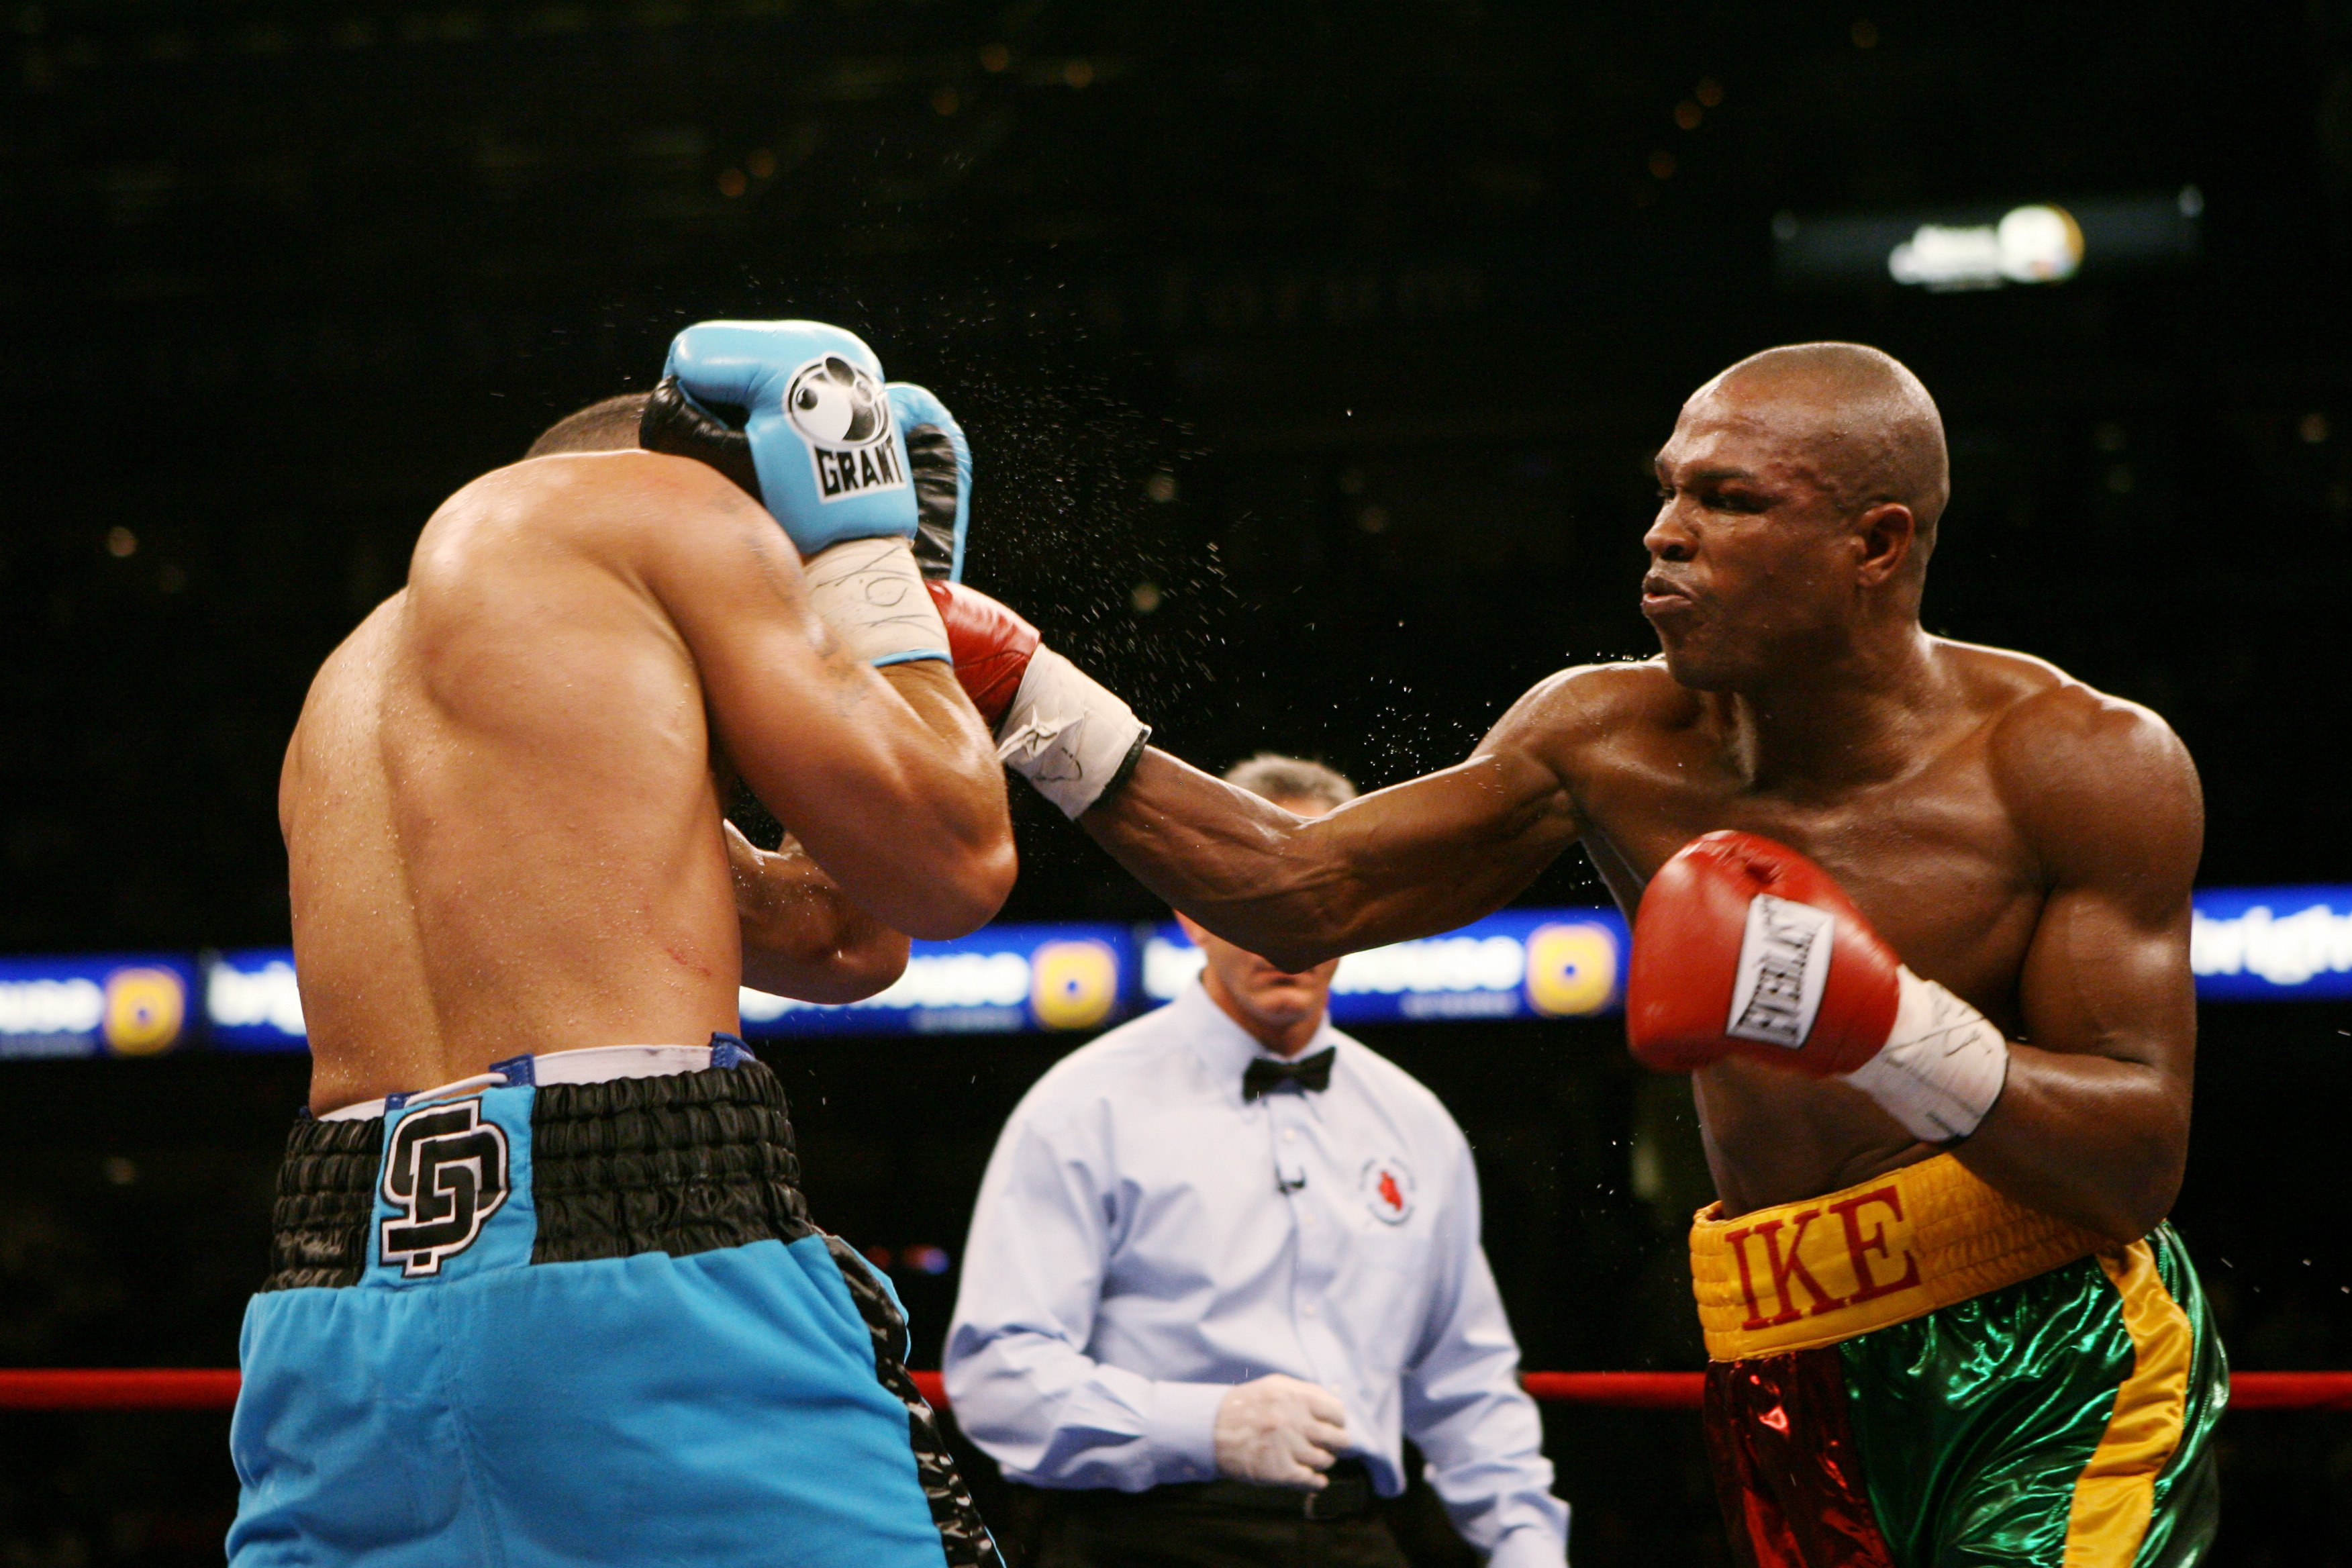 TAMPA, FL - DECEMBER 2:  Winky Wright (R) throws a punch at Ike Quartey during a middleweight fight at the St. Pete Times Forum on December 2, 2006 in Tampa, Florida.  Wright won by unanimous decision.  (Photo by Doug Benc/Getty Images)